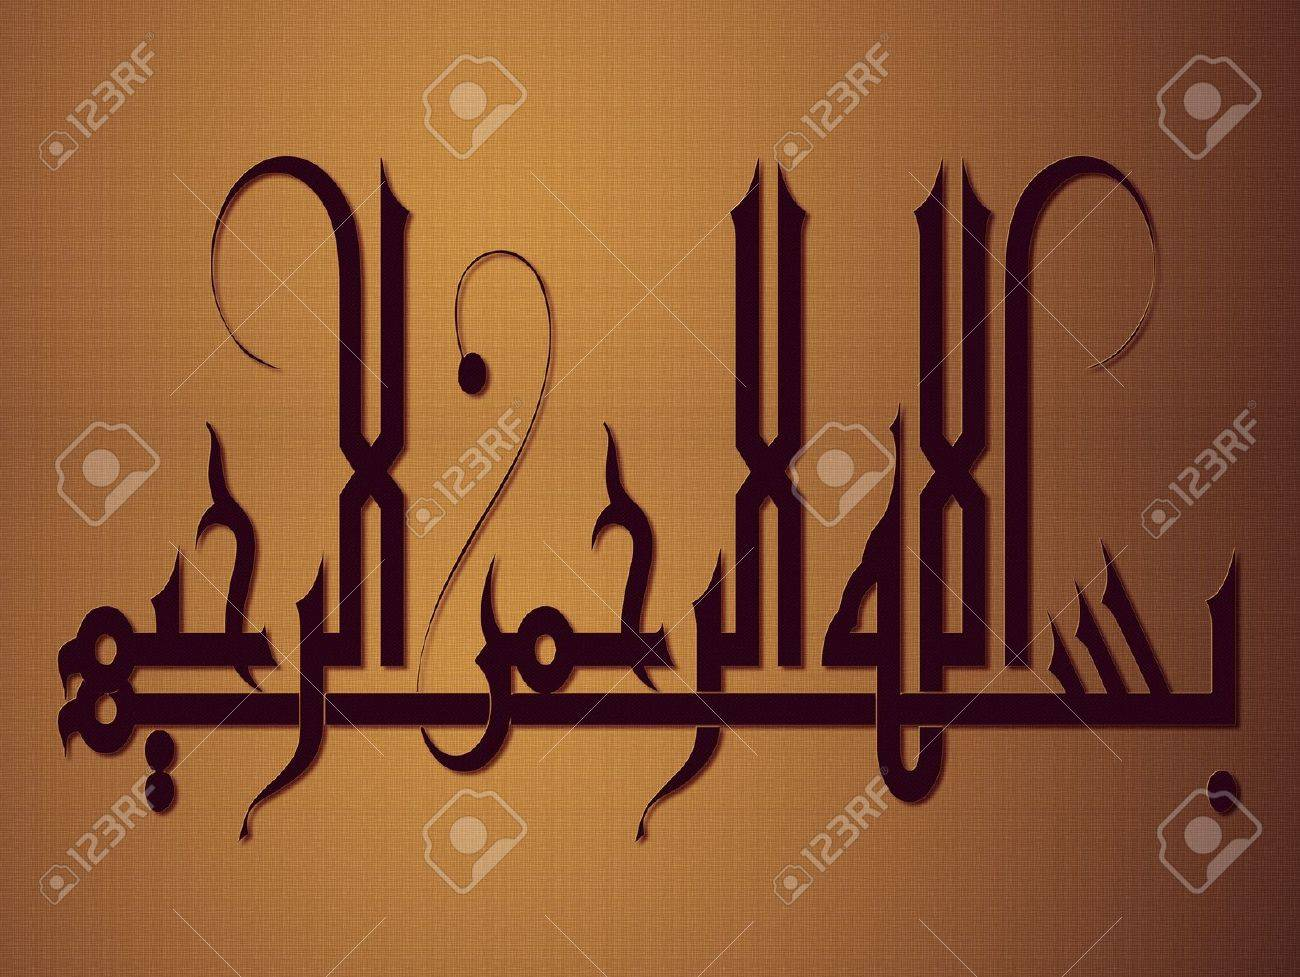 Bismillah in the name of god arabic calligraphy text stock photo